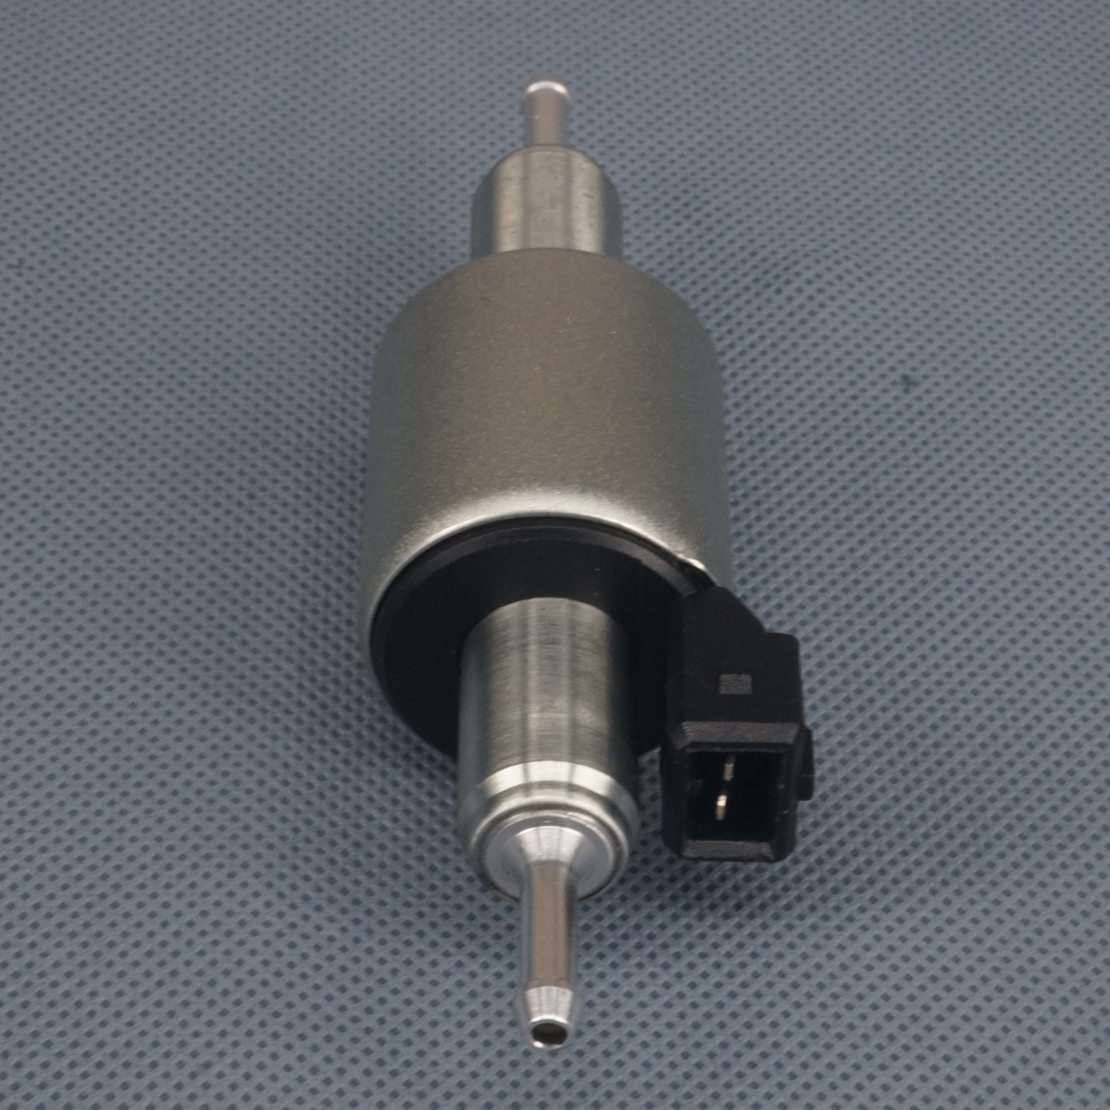 DWCX Car 12V 65 Flows Oil Fuel Pump Replacement Fit For 1KW to 5KW More Eberspacher And Webasto Heaters